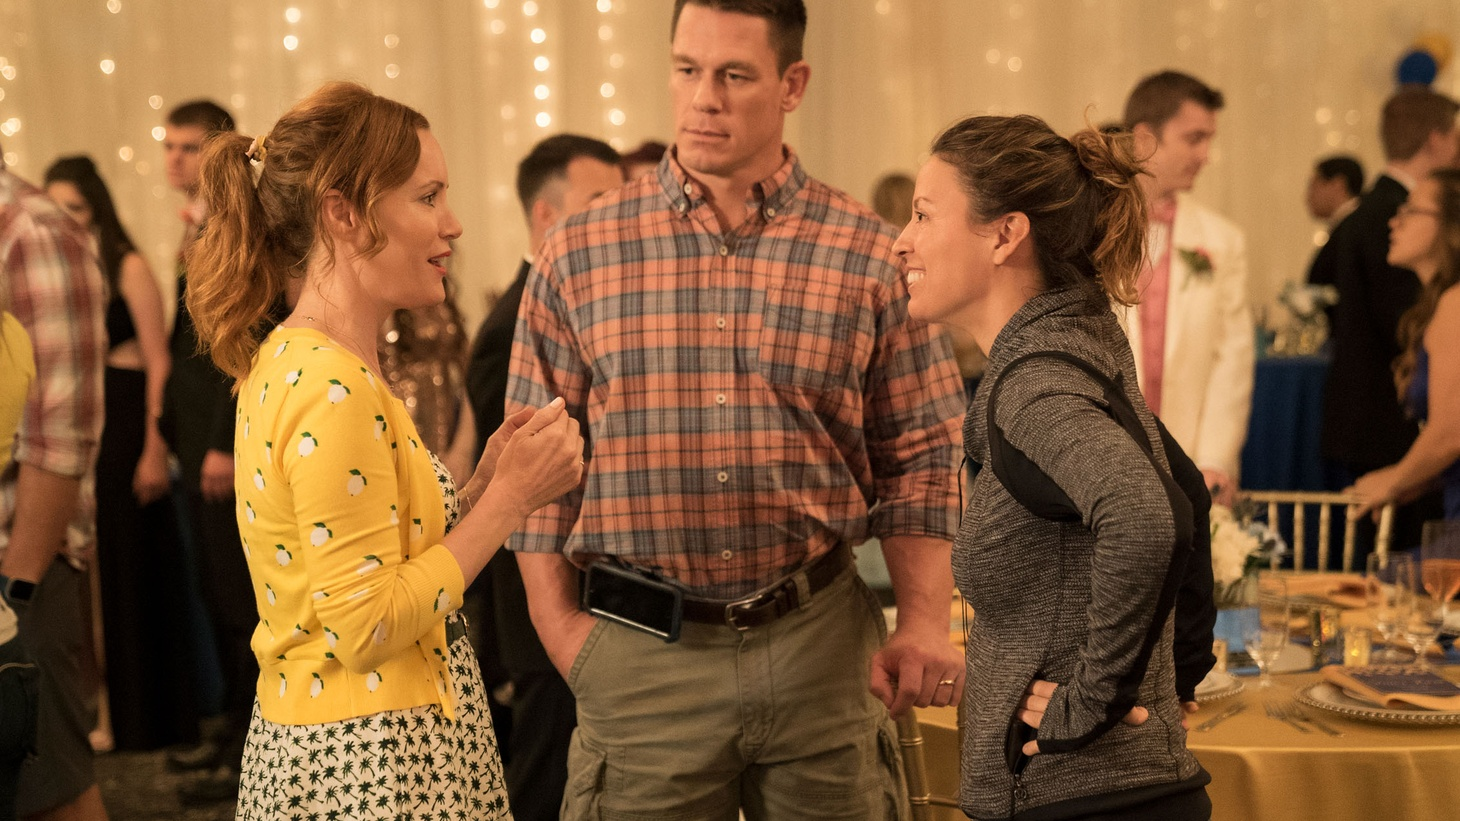 'Blockers 'is comedy writer Kay Cannon's directorial debut. When she was hired for the project, she had some work to do on a script about girls, written by a bunch of guys.